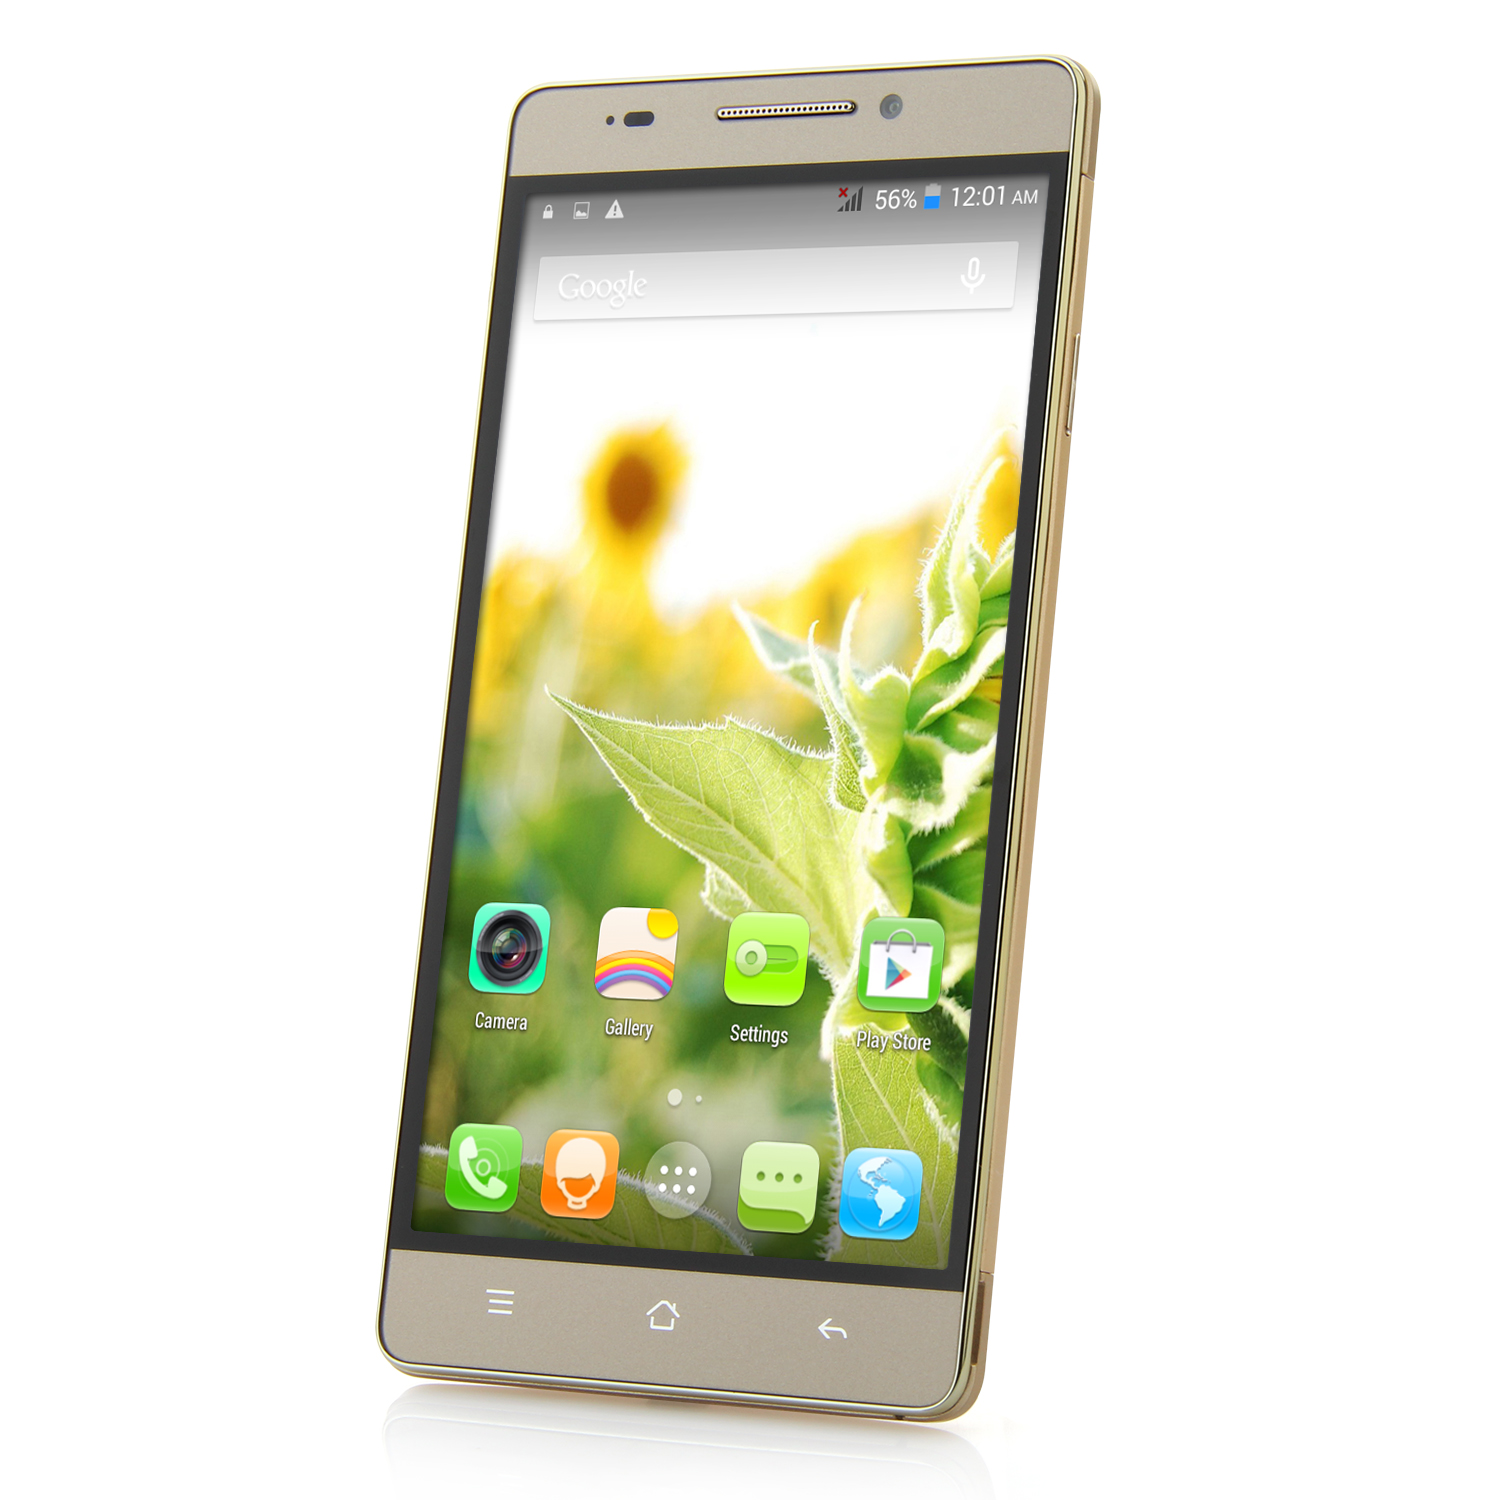 M7 Smartphone Android 4.4 MTK6582 Quad Core 1GB 8GB 5.5 Inch QHD Screen Gold